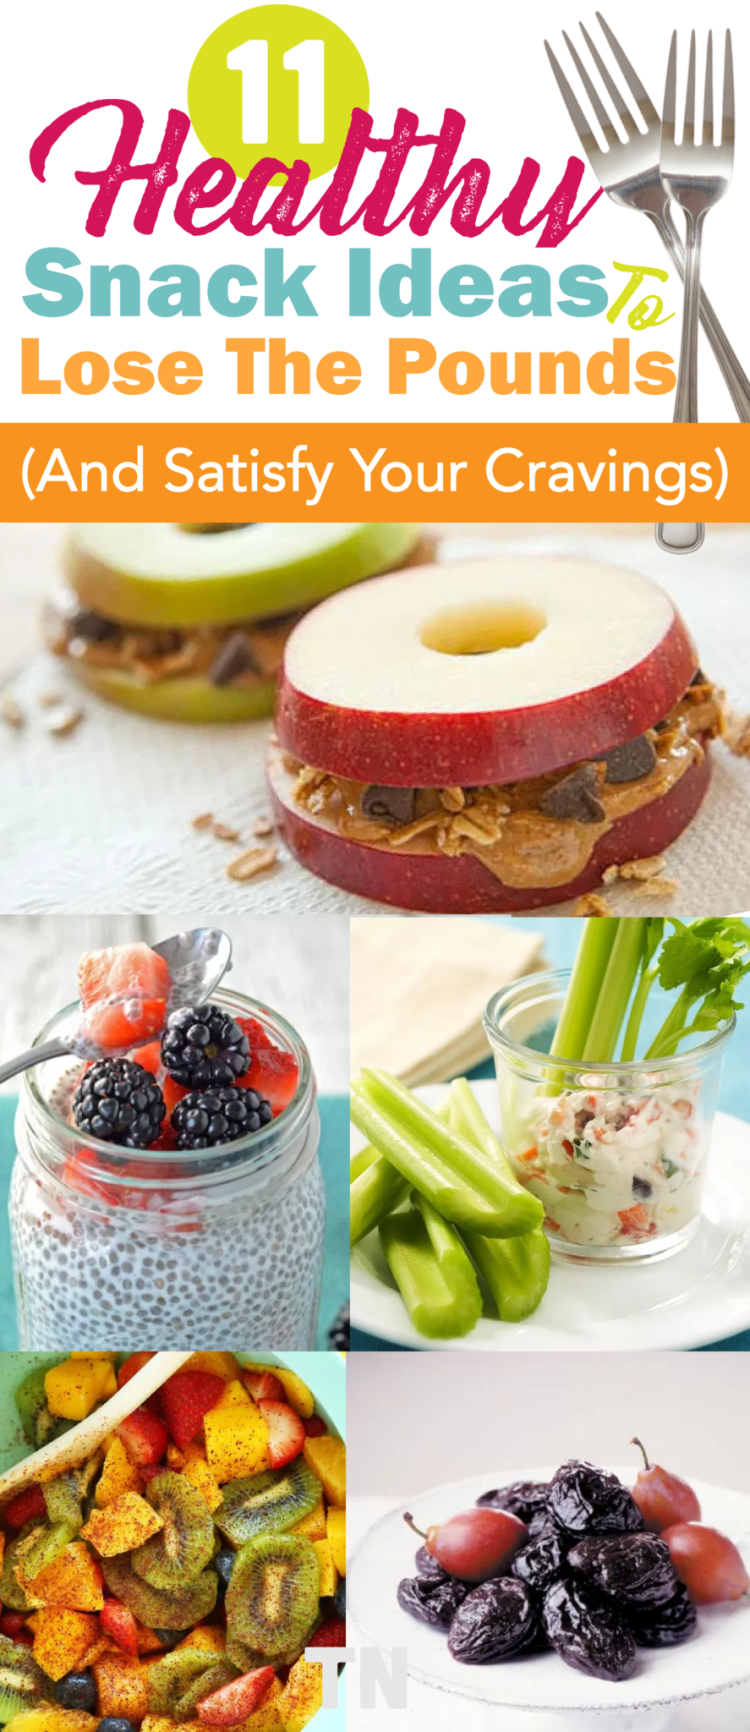 45 Healthy Snack Ideas To Lose Weight and Satisfy Your Cravings- A Healthy Snacks List